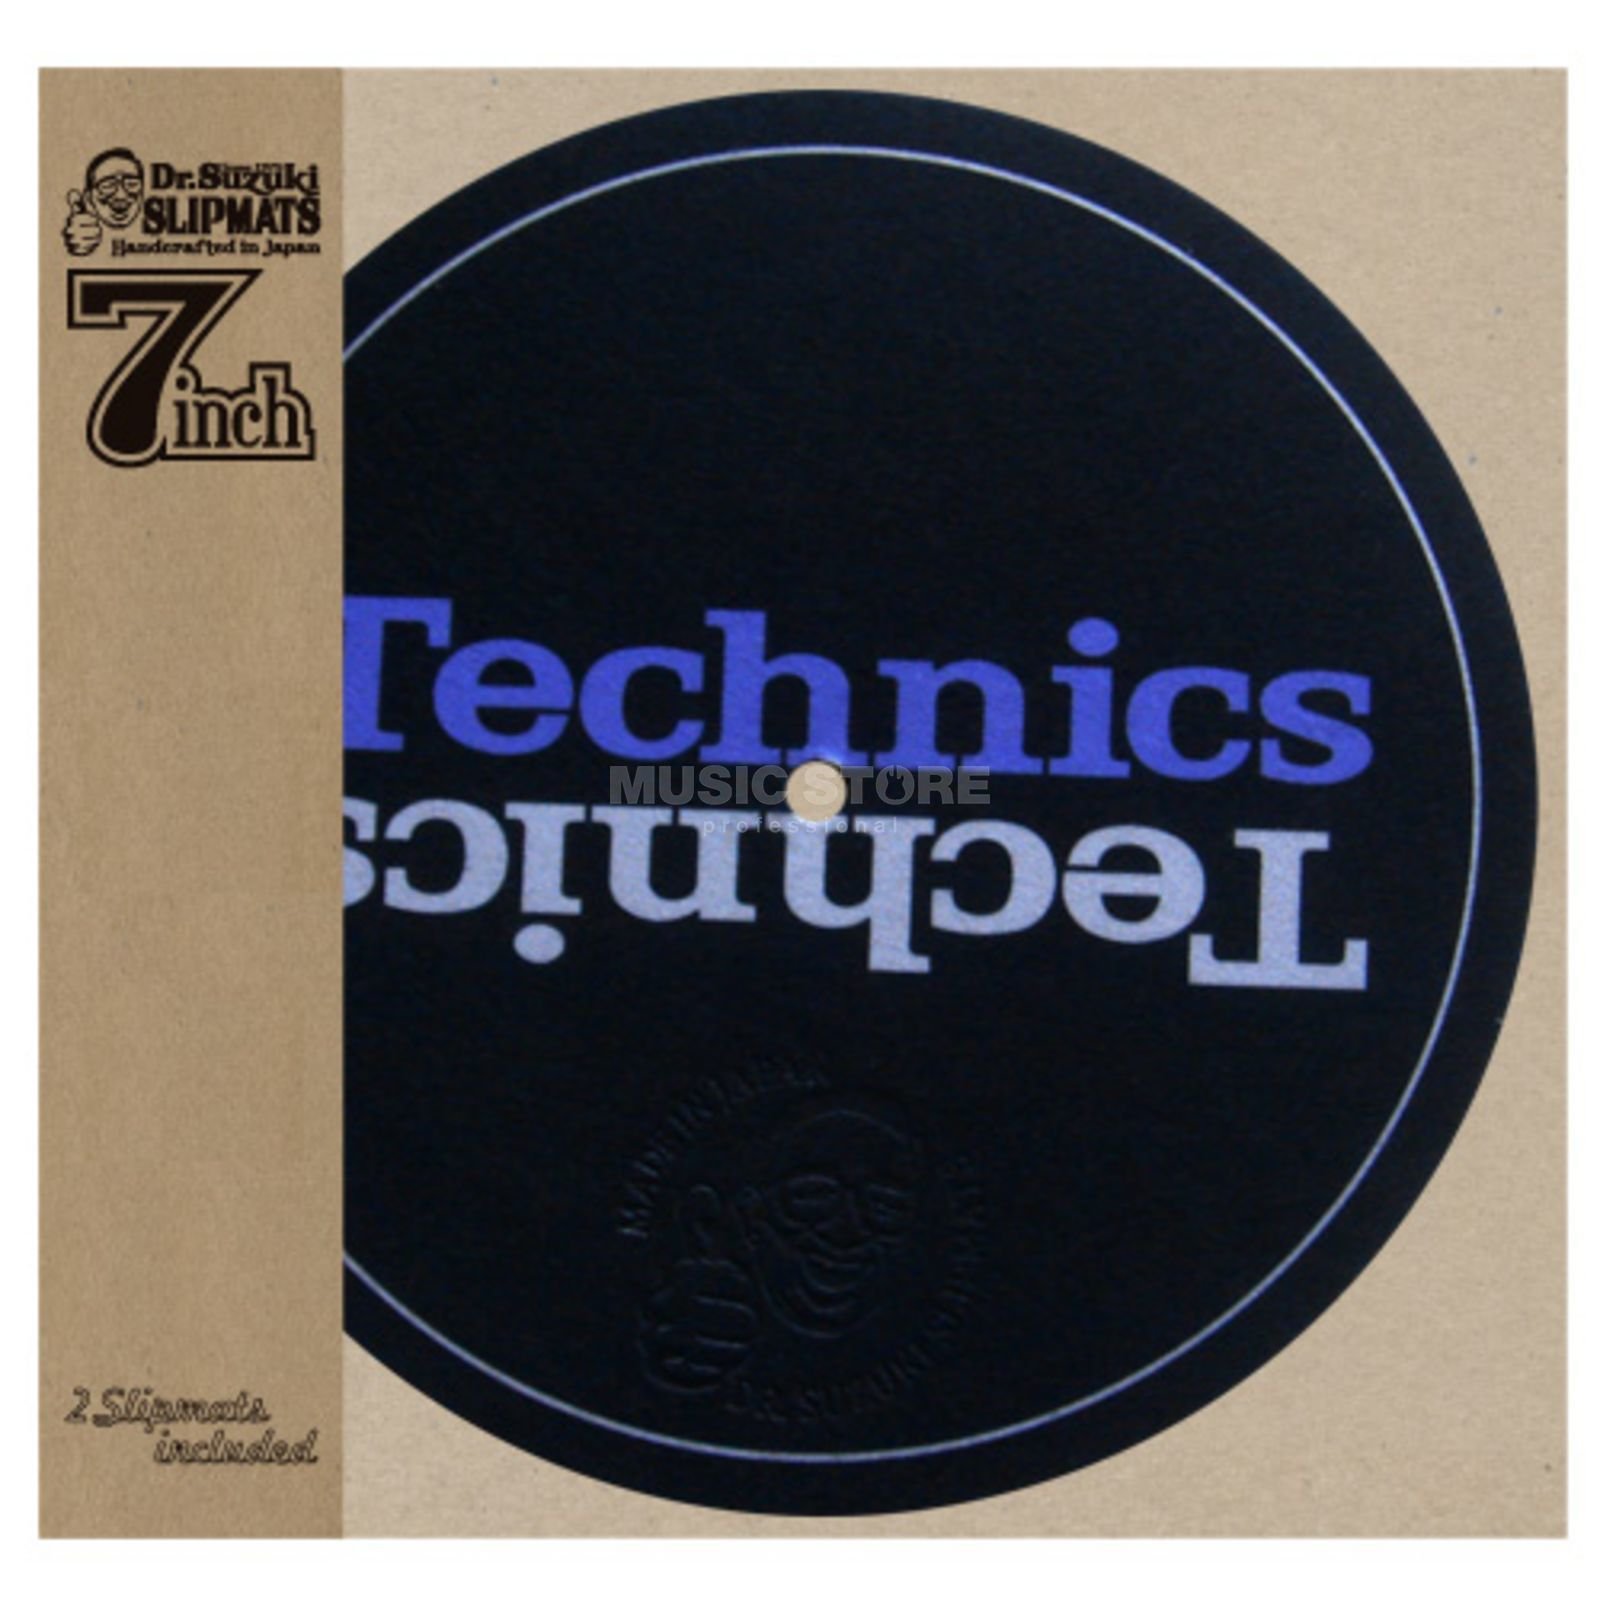 "Tablecloth Dr. Suzuki 7"" Mix Edition Slipmats Technics (paar) Produktbillede"